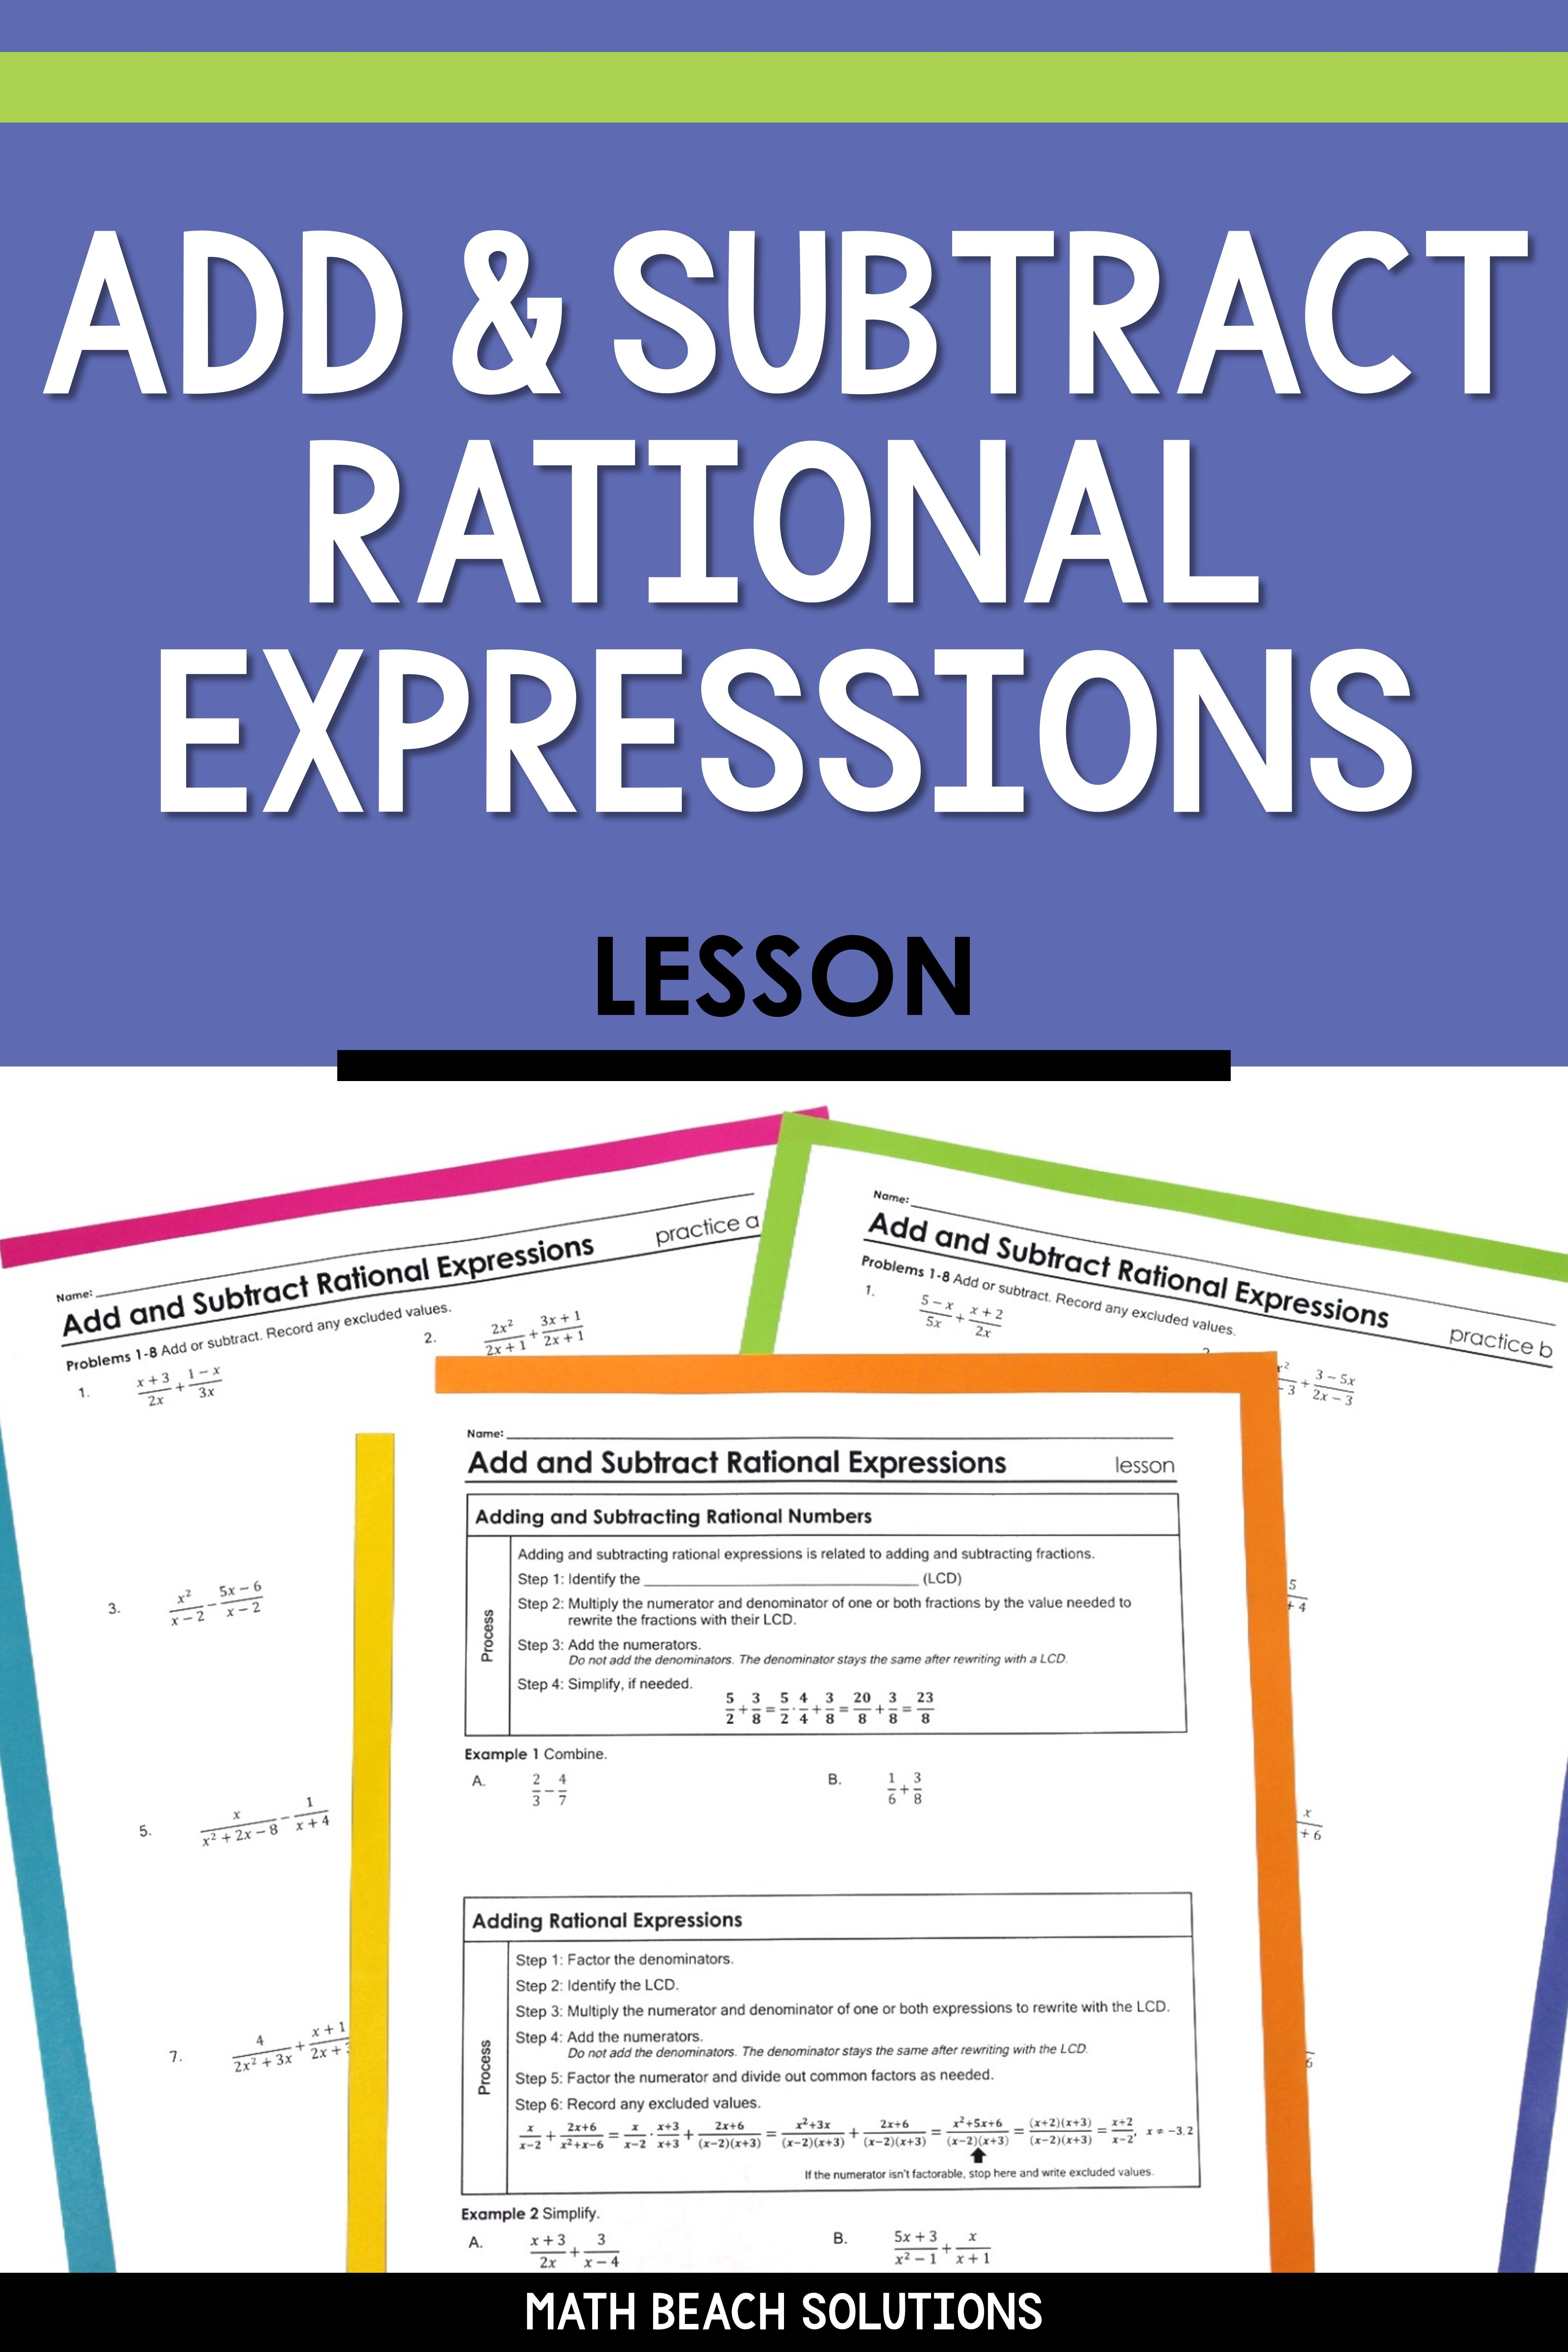 Add And Subtract Rational Expressions Lesson Rational Expressions Algebra Lesson Plans Adding And Subtracting